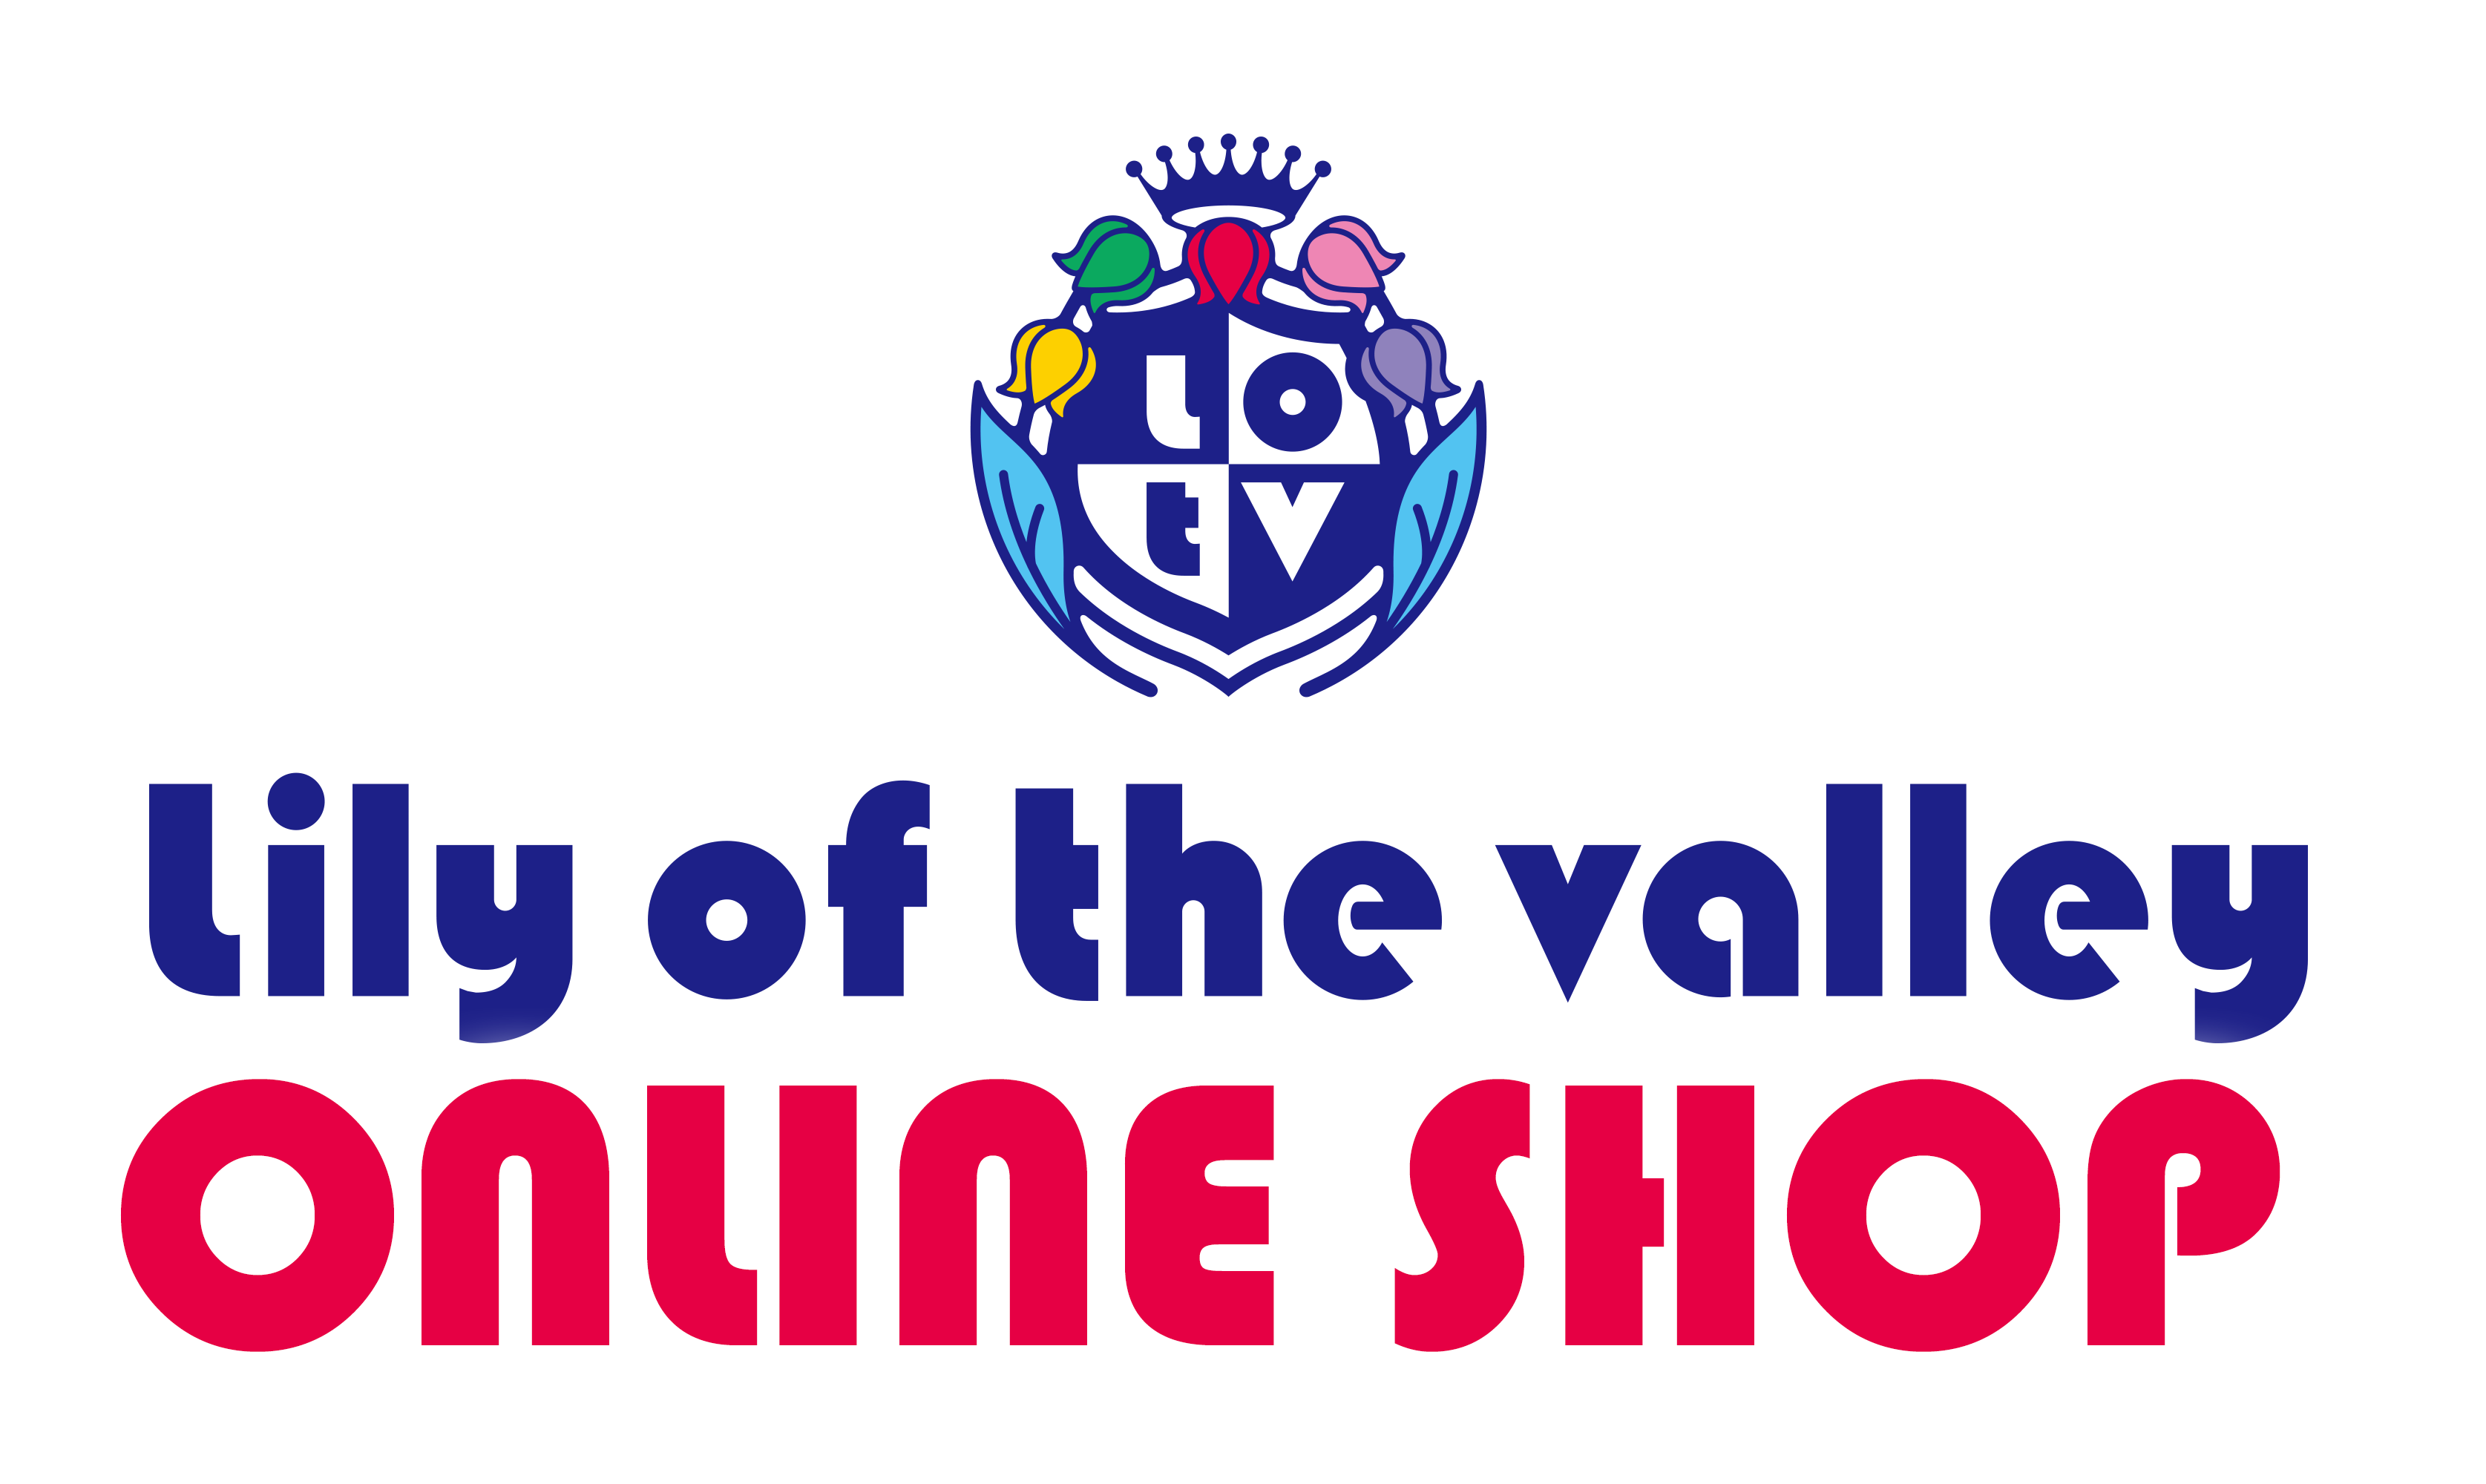 Lily of the valley ONLINE SHOP